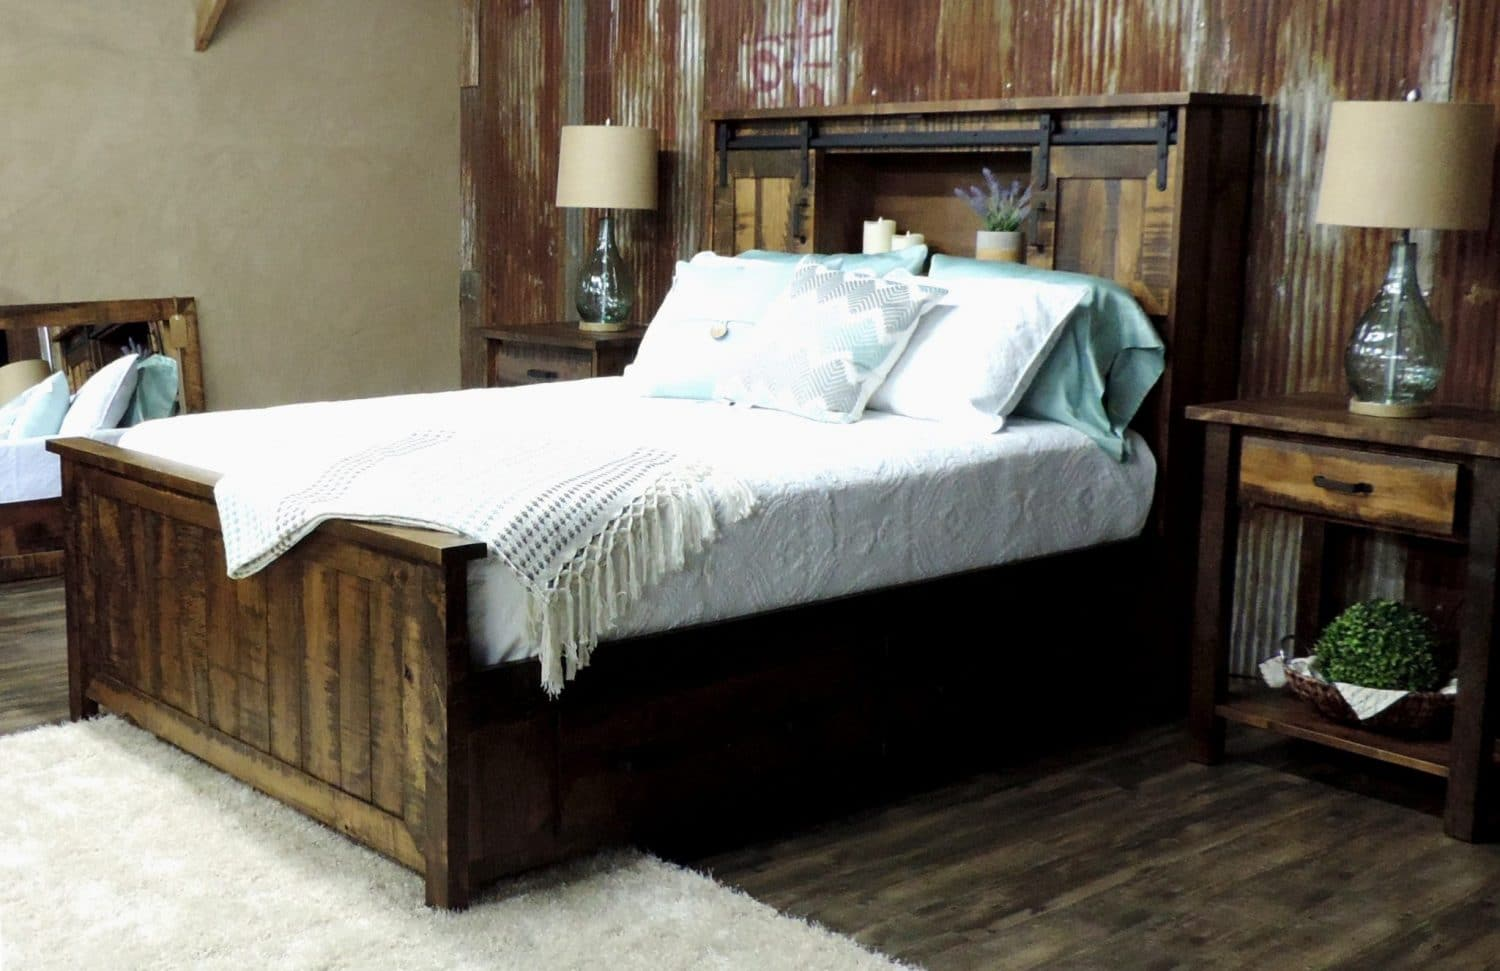 Timberline Captain Bed In Rough-Sawn Maple